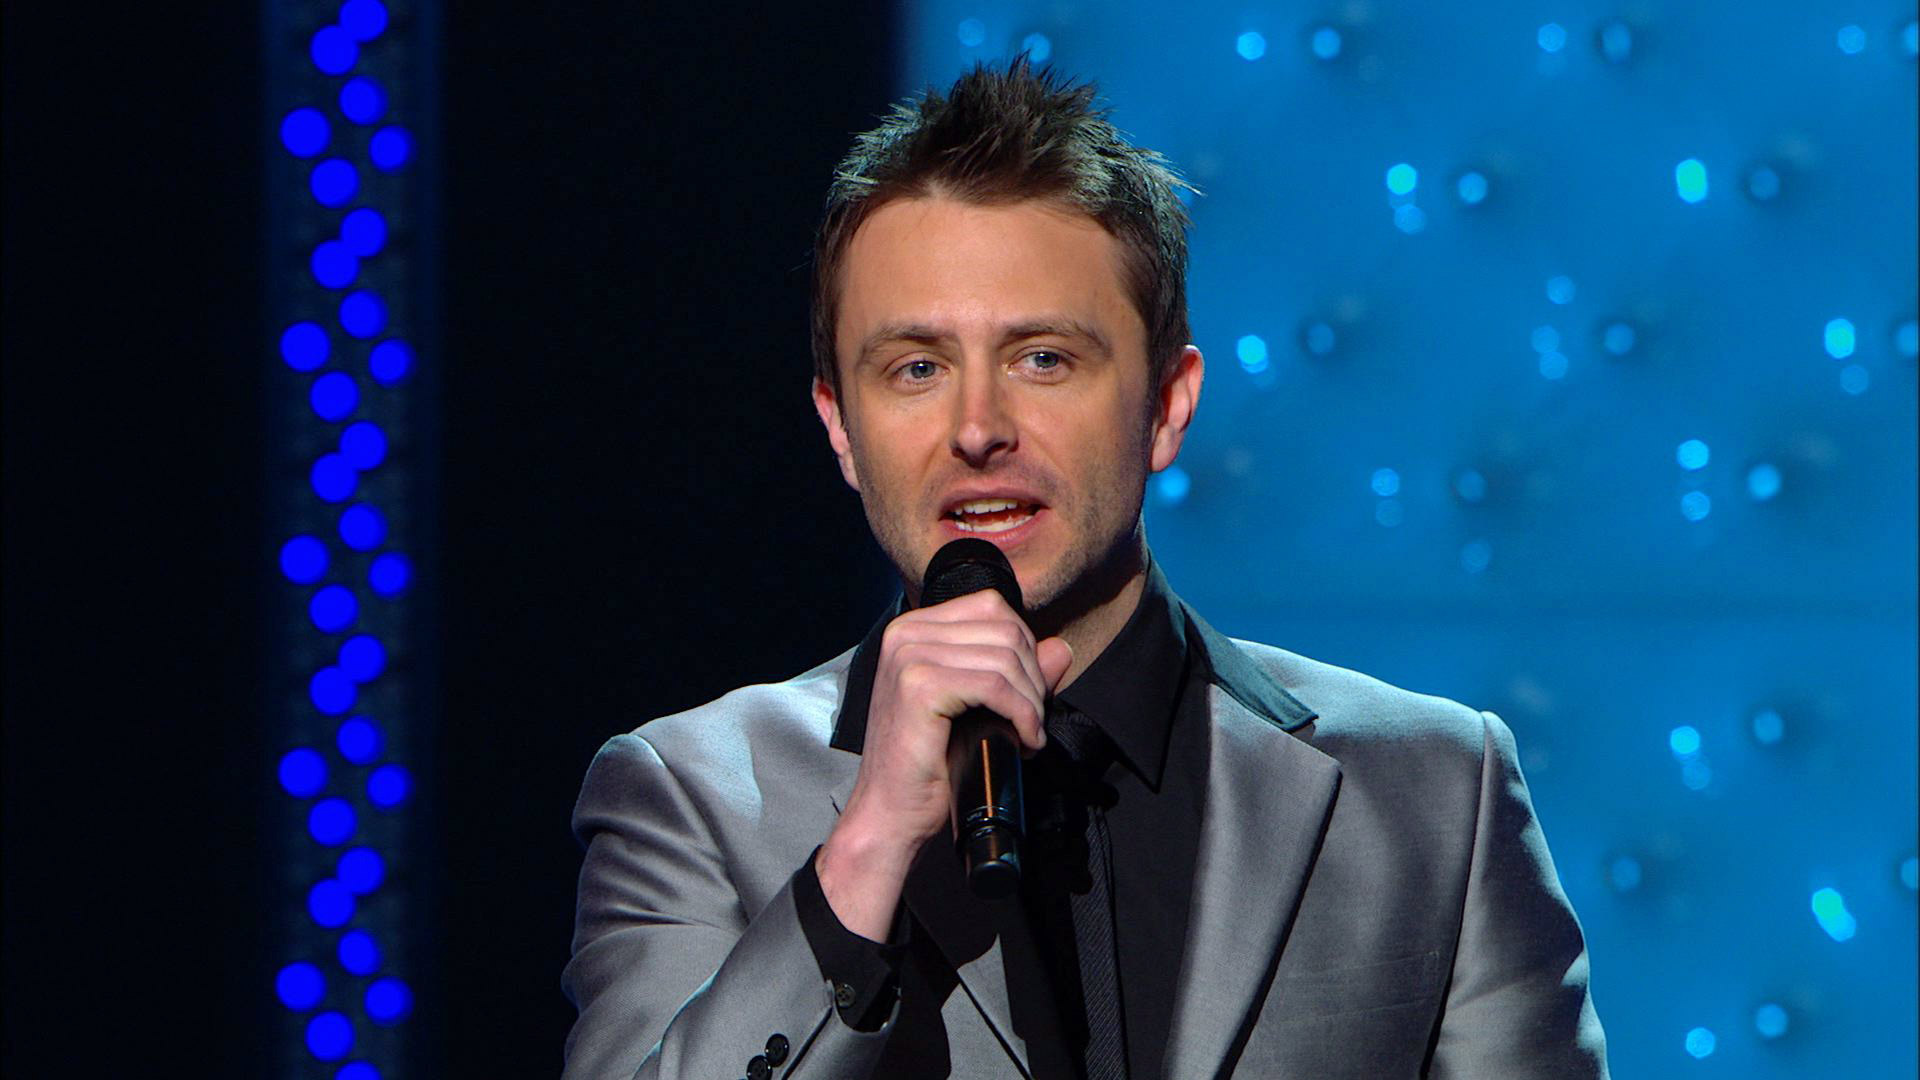 Chris Hardwick Funcomfortable Tour! Photo: Comedy Central